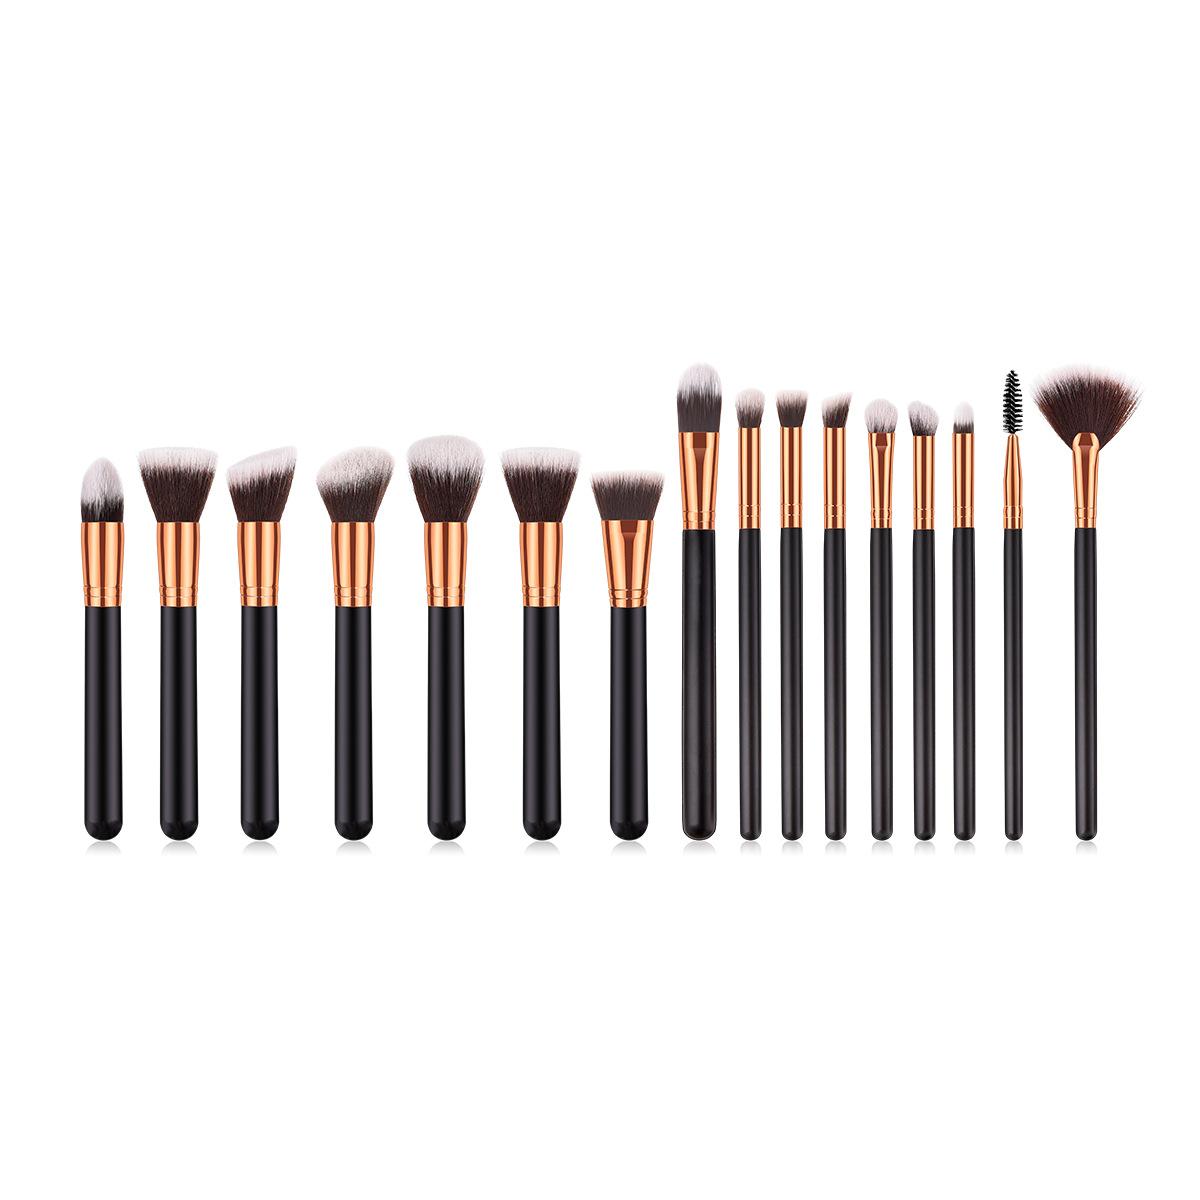 16 pcs makeup brush set MB109